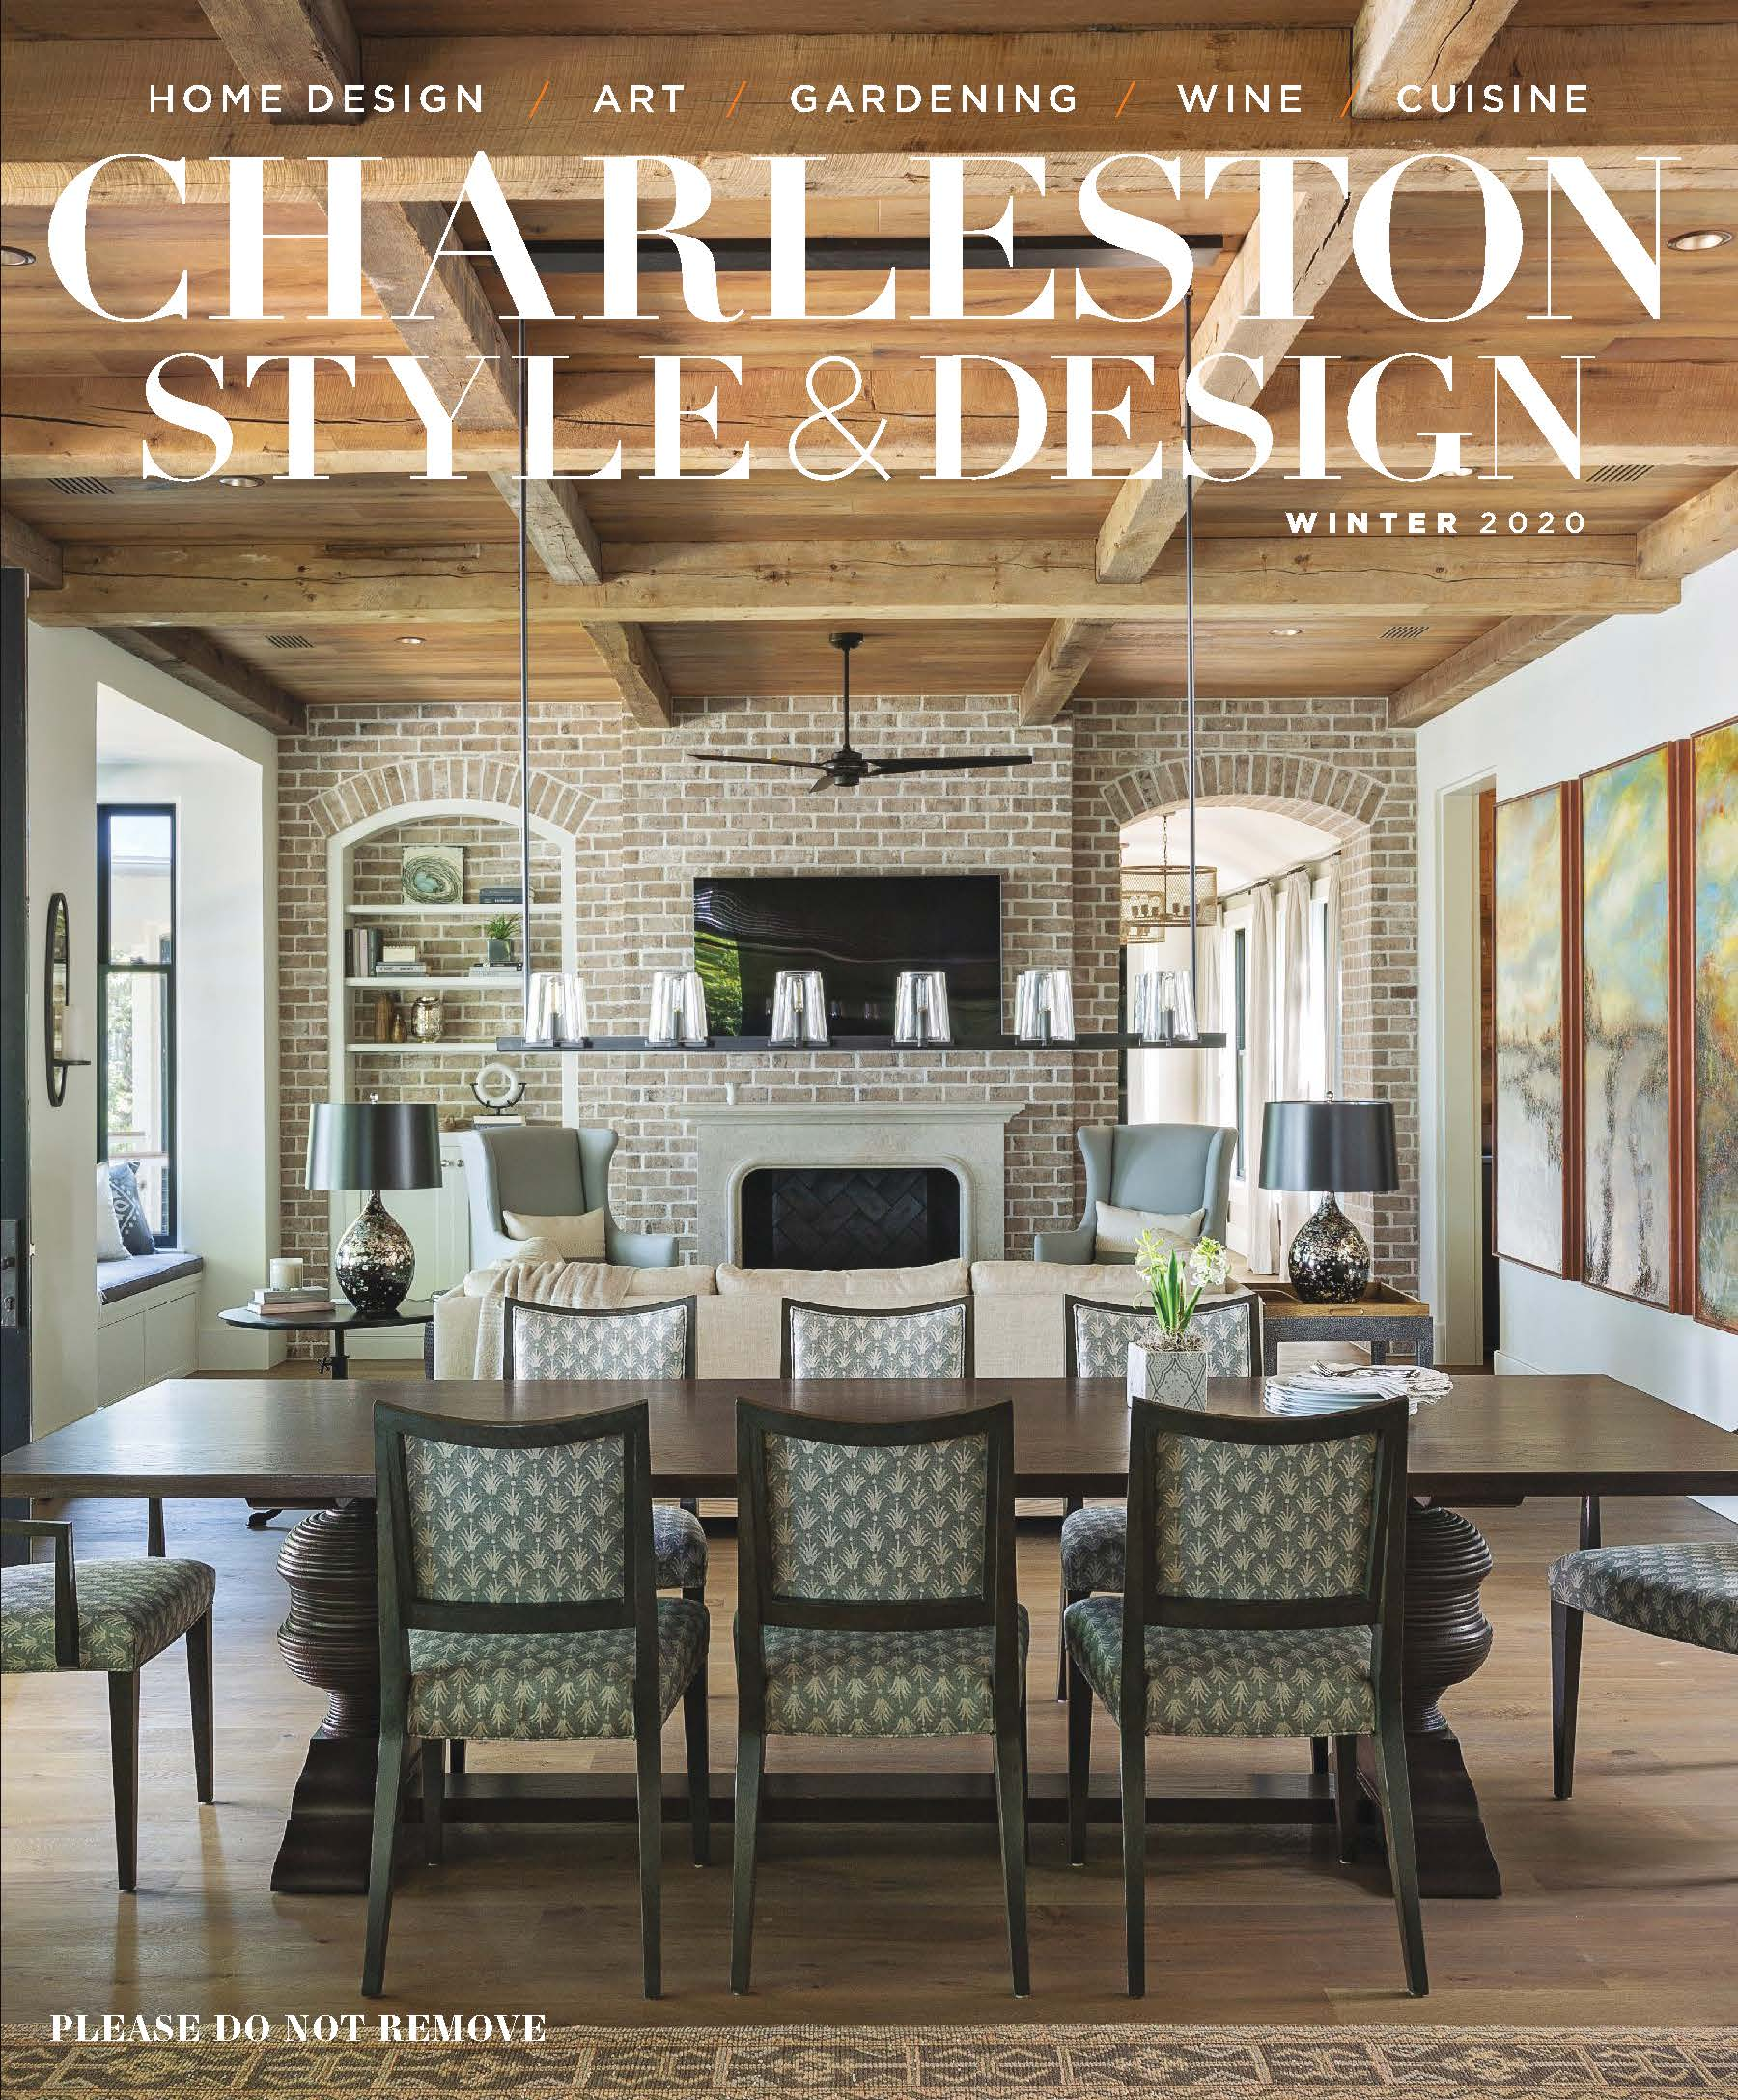 Charleston Style and Design Winter 2020